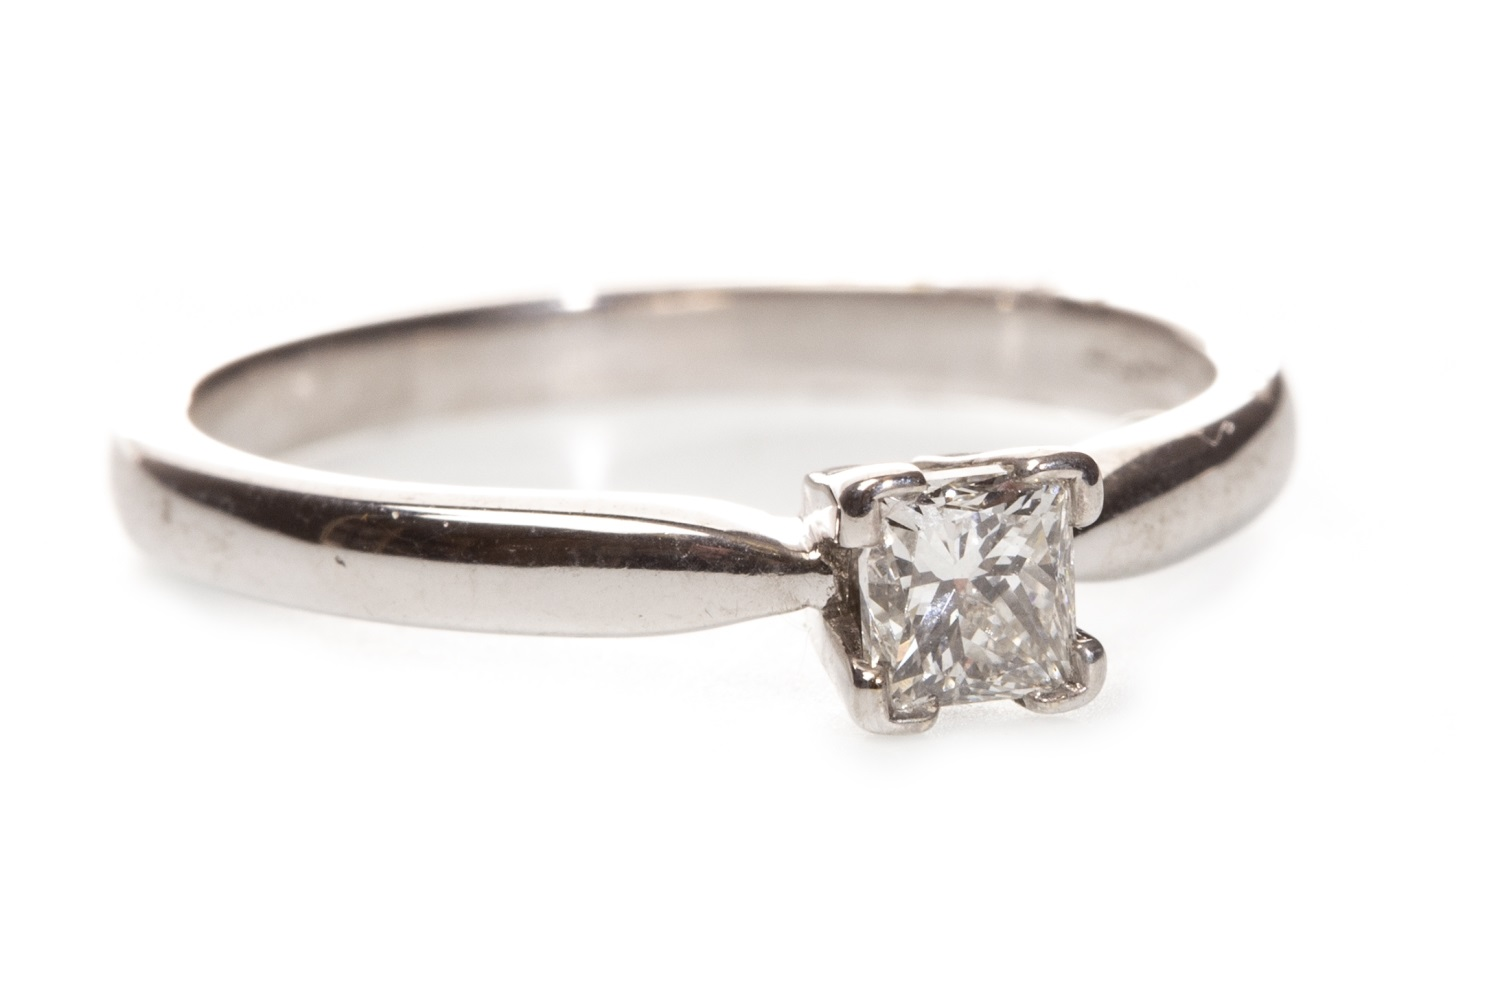 Lot 114 - A DIAMOND SOLITAIRE RING